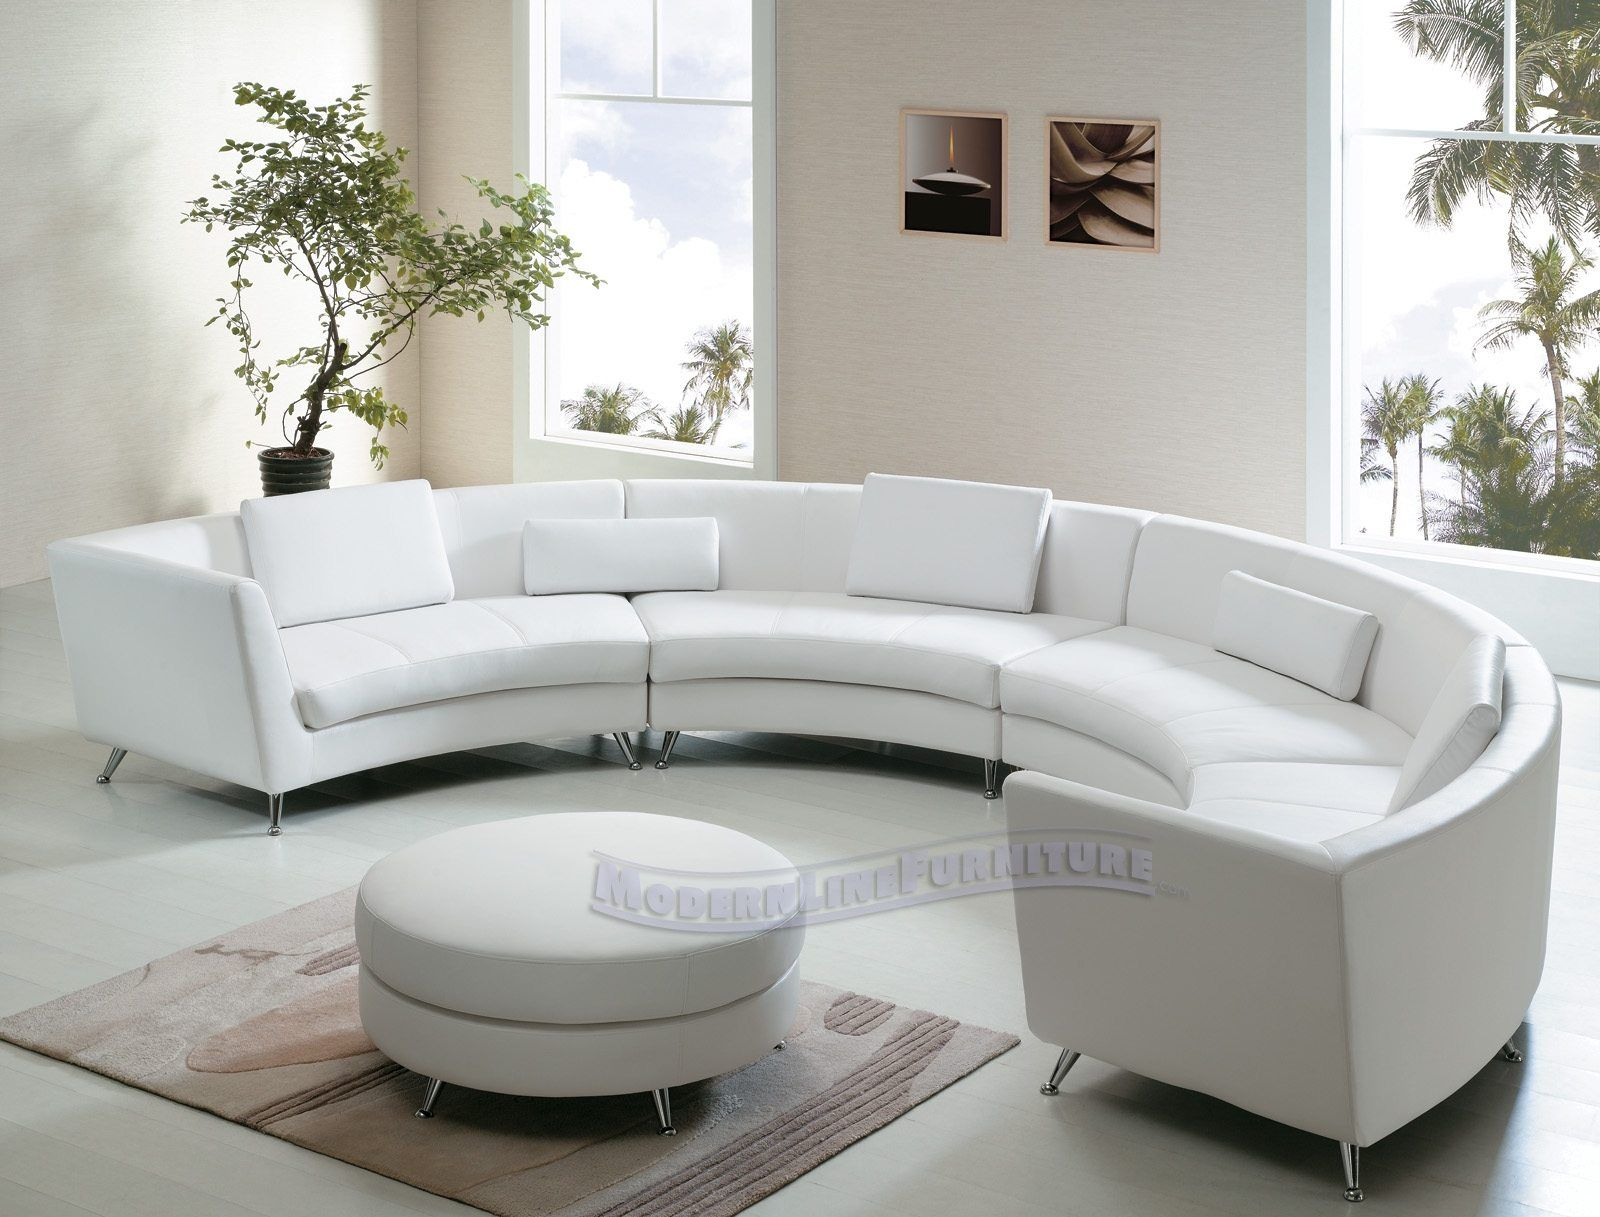 Light grey leather sectional sofa with adjustable back height